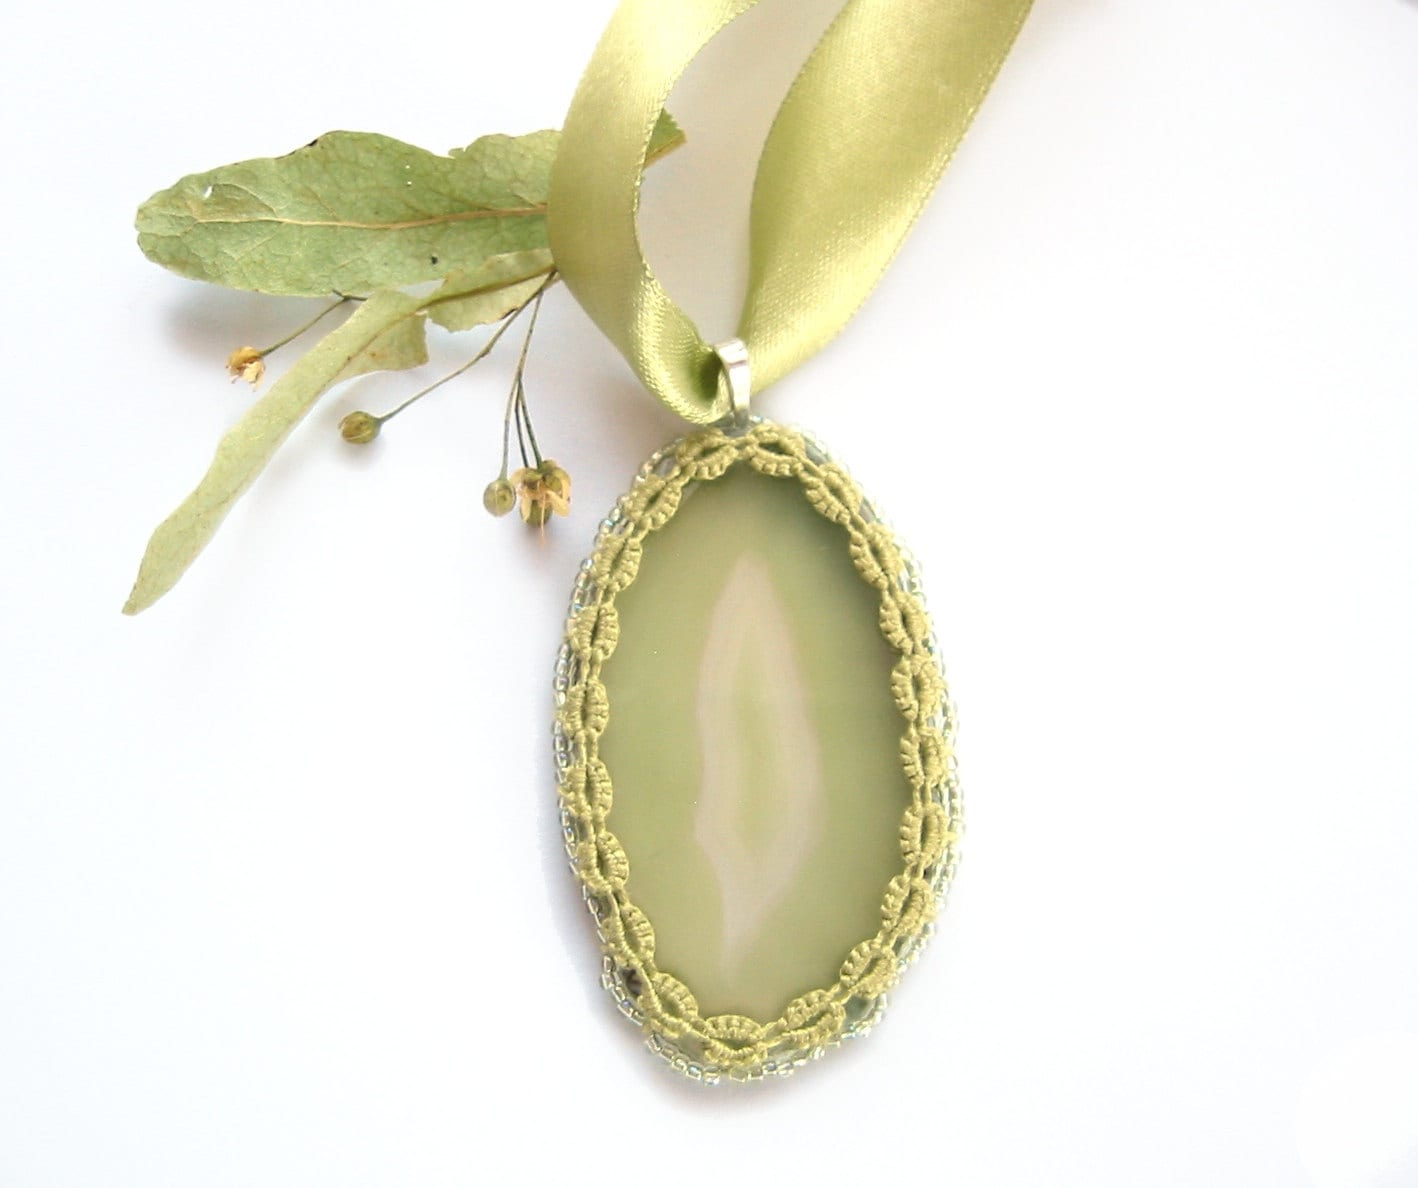 Agate slice pendant with tatted lace frame - Linden green agate stone unique pendant OOAK - LandOfLaces